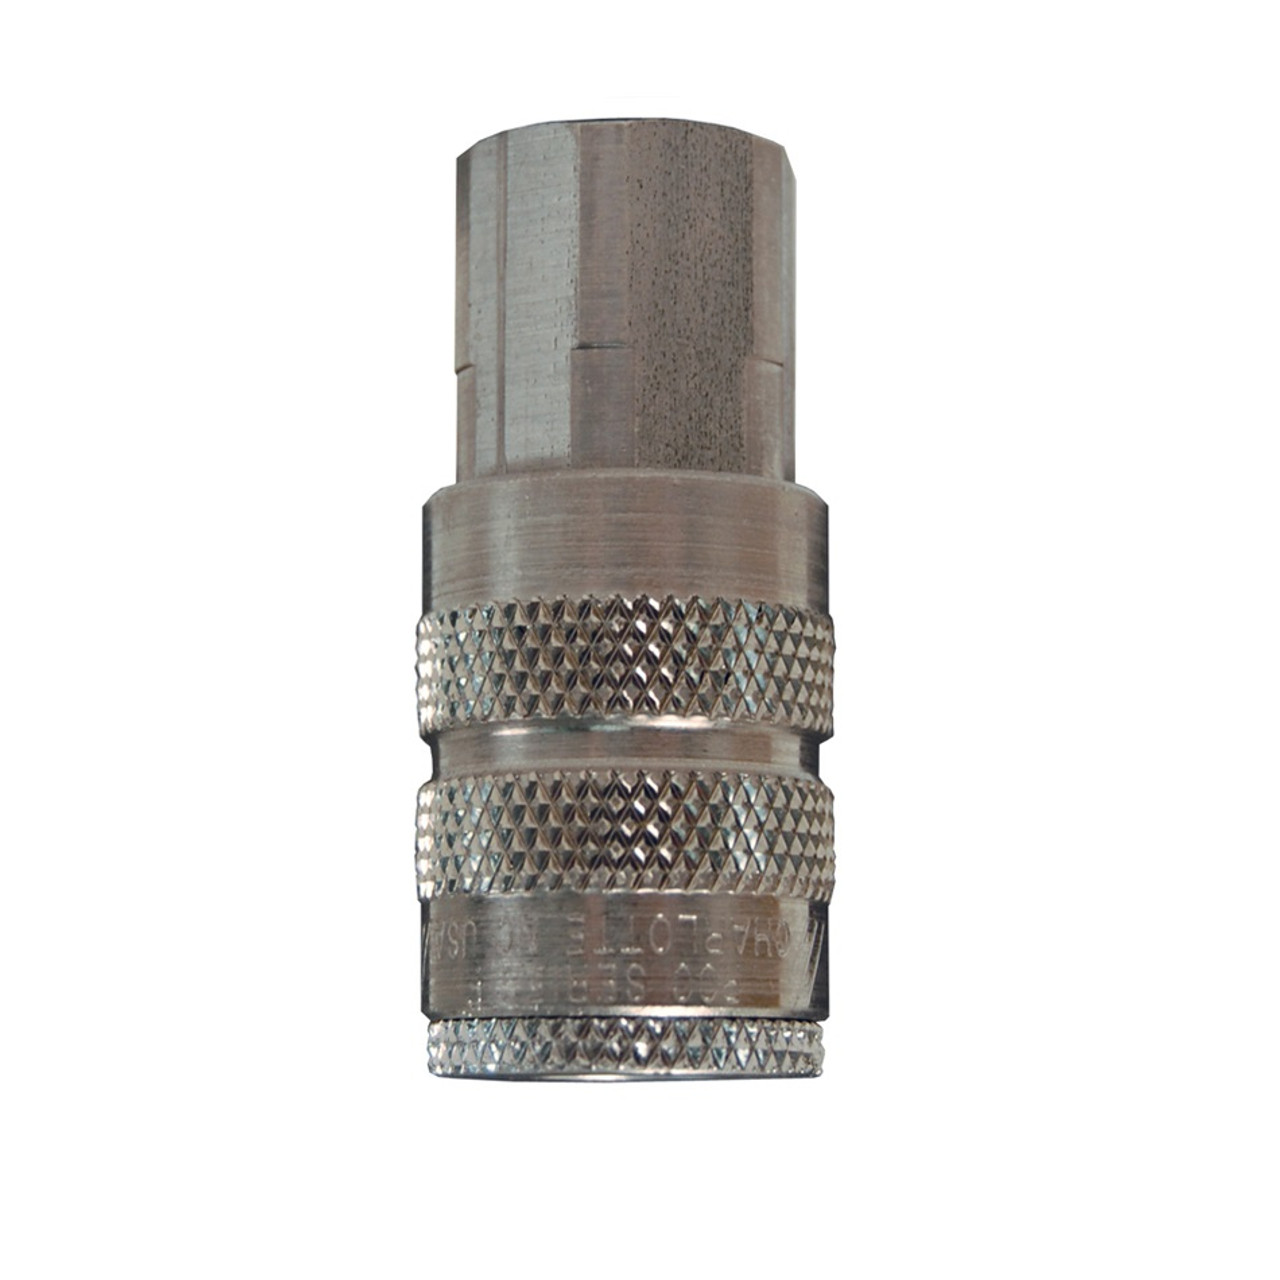 Dixon Air Chief Steel Industrial Quick Connect Coupler 3/8 in Female NPT x  1/2 in  Body